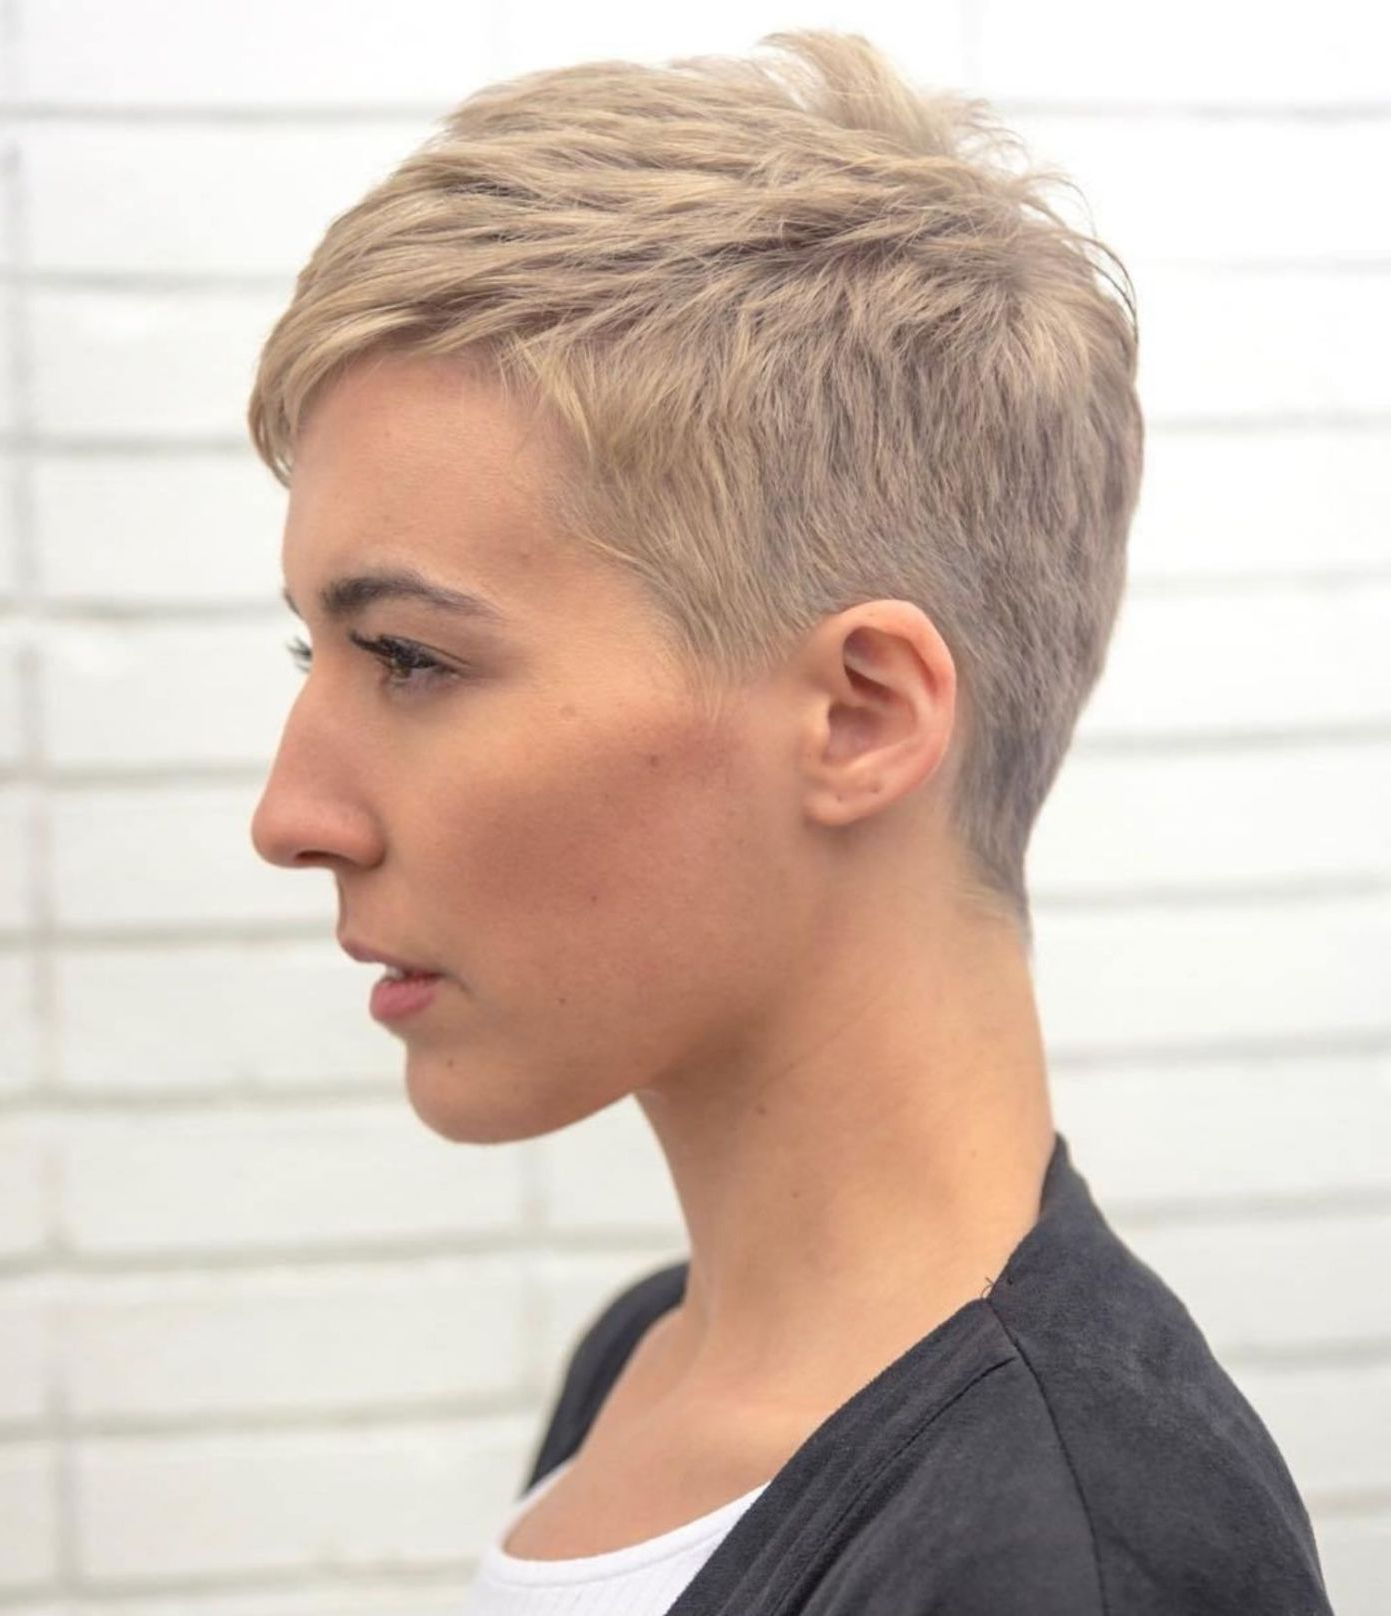 60 Cute Short Pixie Haircuts – Femininity And Practicality Within Popular Boyish Shag Asian Hairstyles (View 11 of 20)